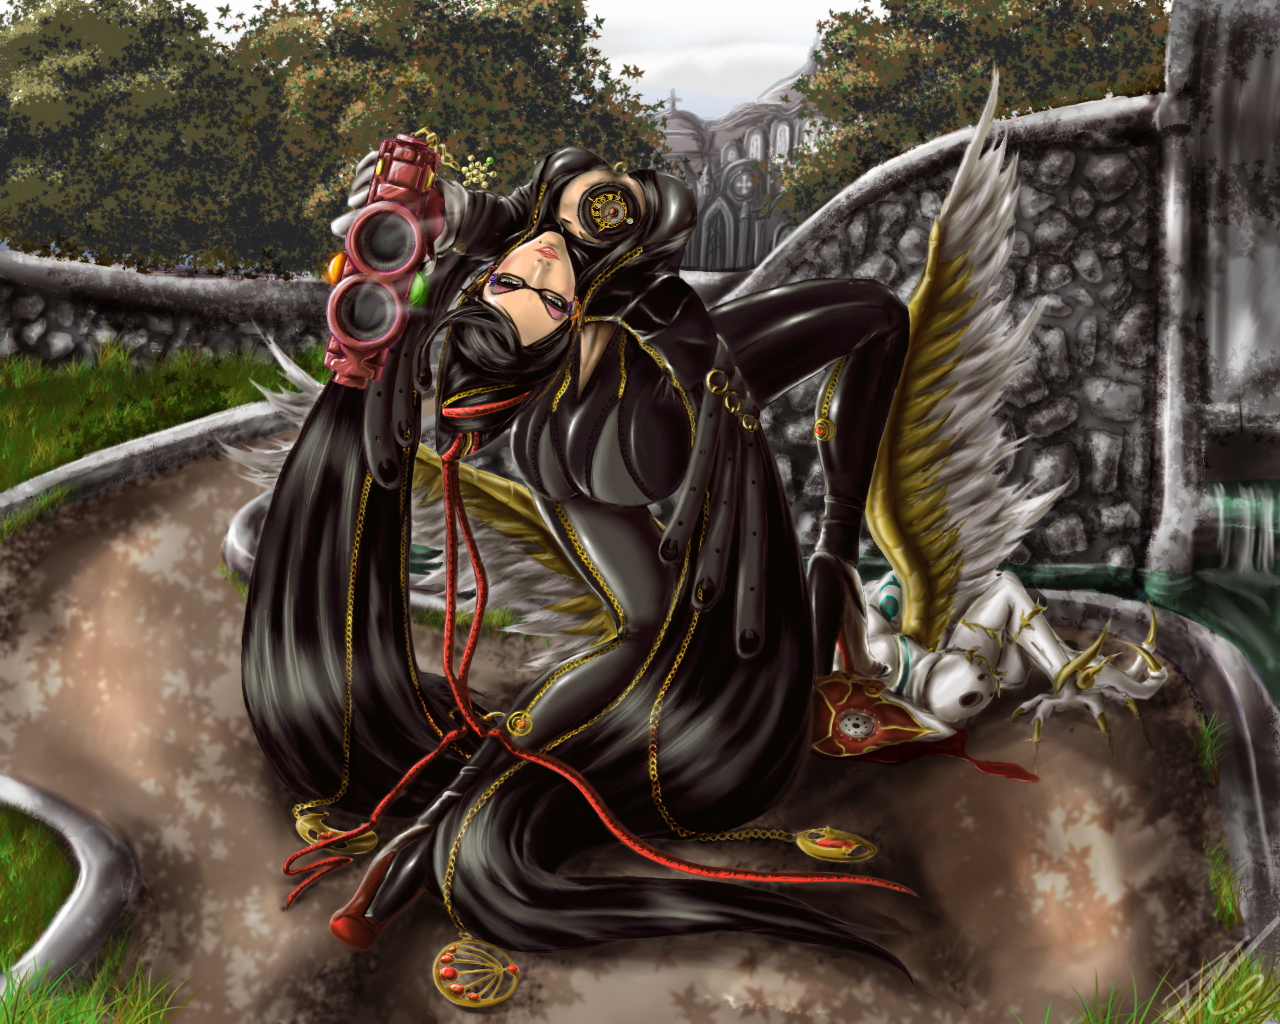 Bayonetta Fan Art File:bayonetta Fan Art 3.jpg